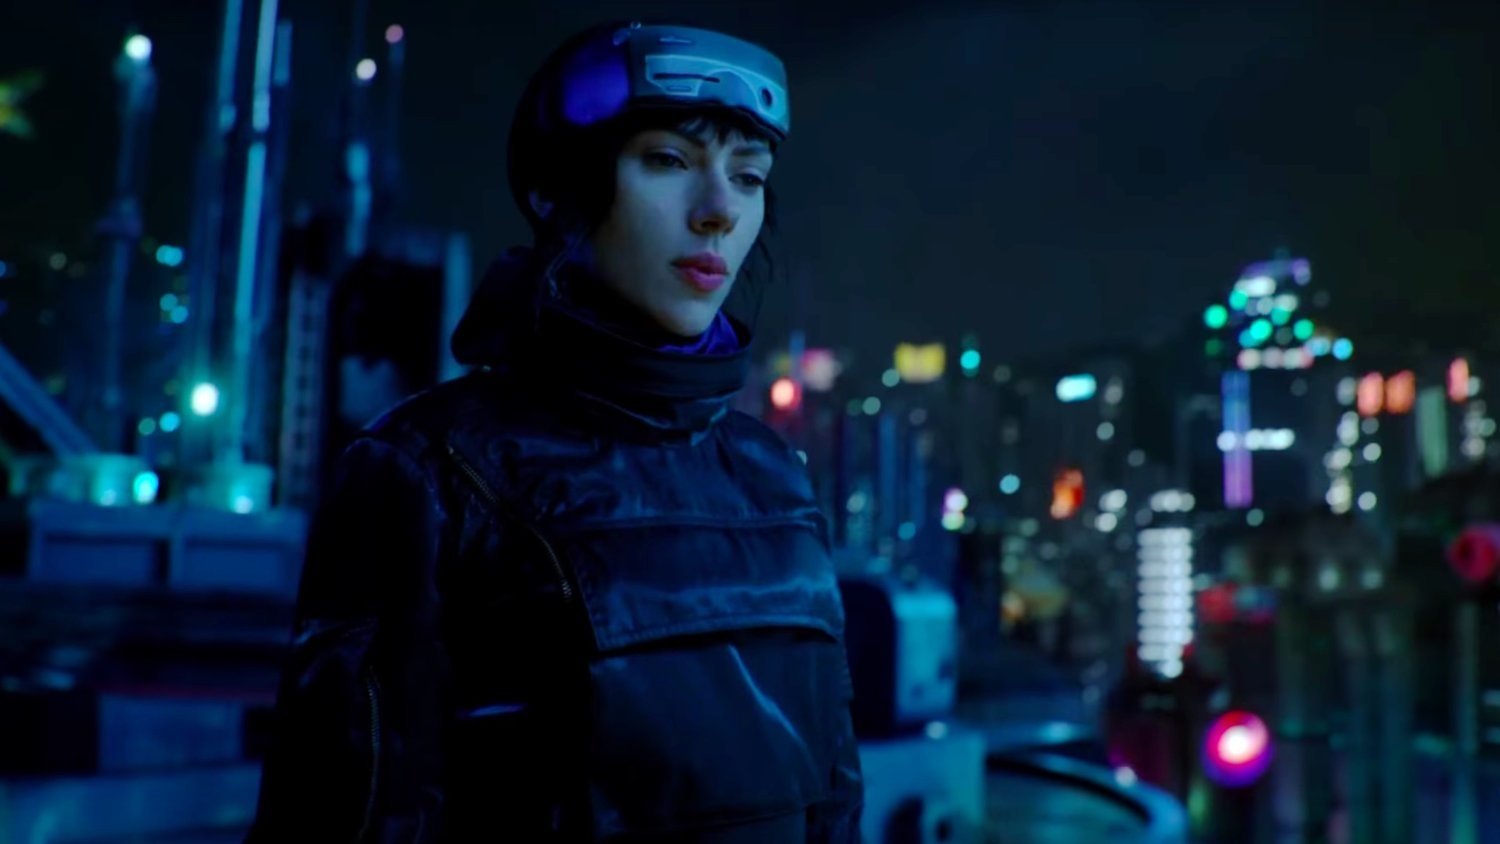 3 New TV Spots for GHOST IN THE SHELL Shows Off Cool New Footage and Story Info